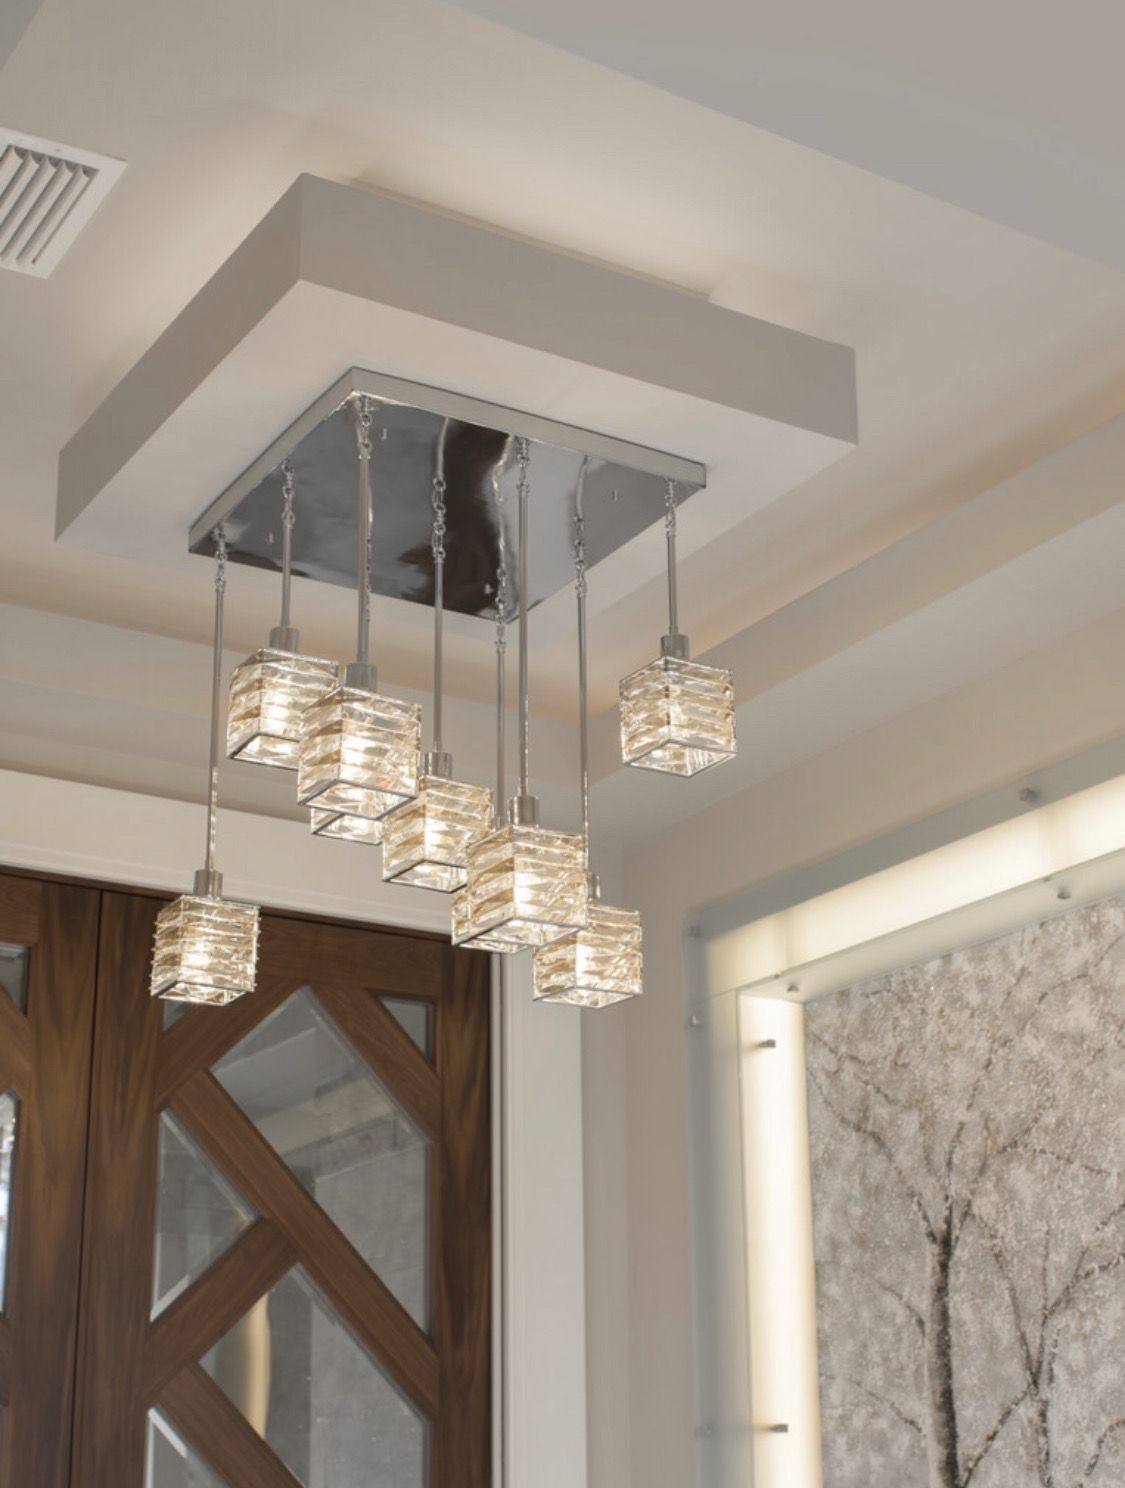 The Luxurious Pointe Foyer Light Fixture With Its Champagne And